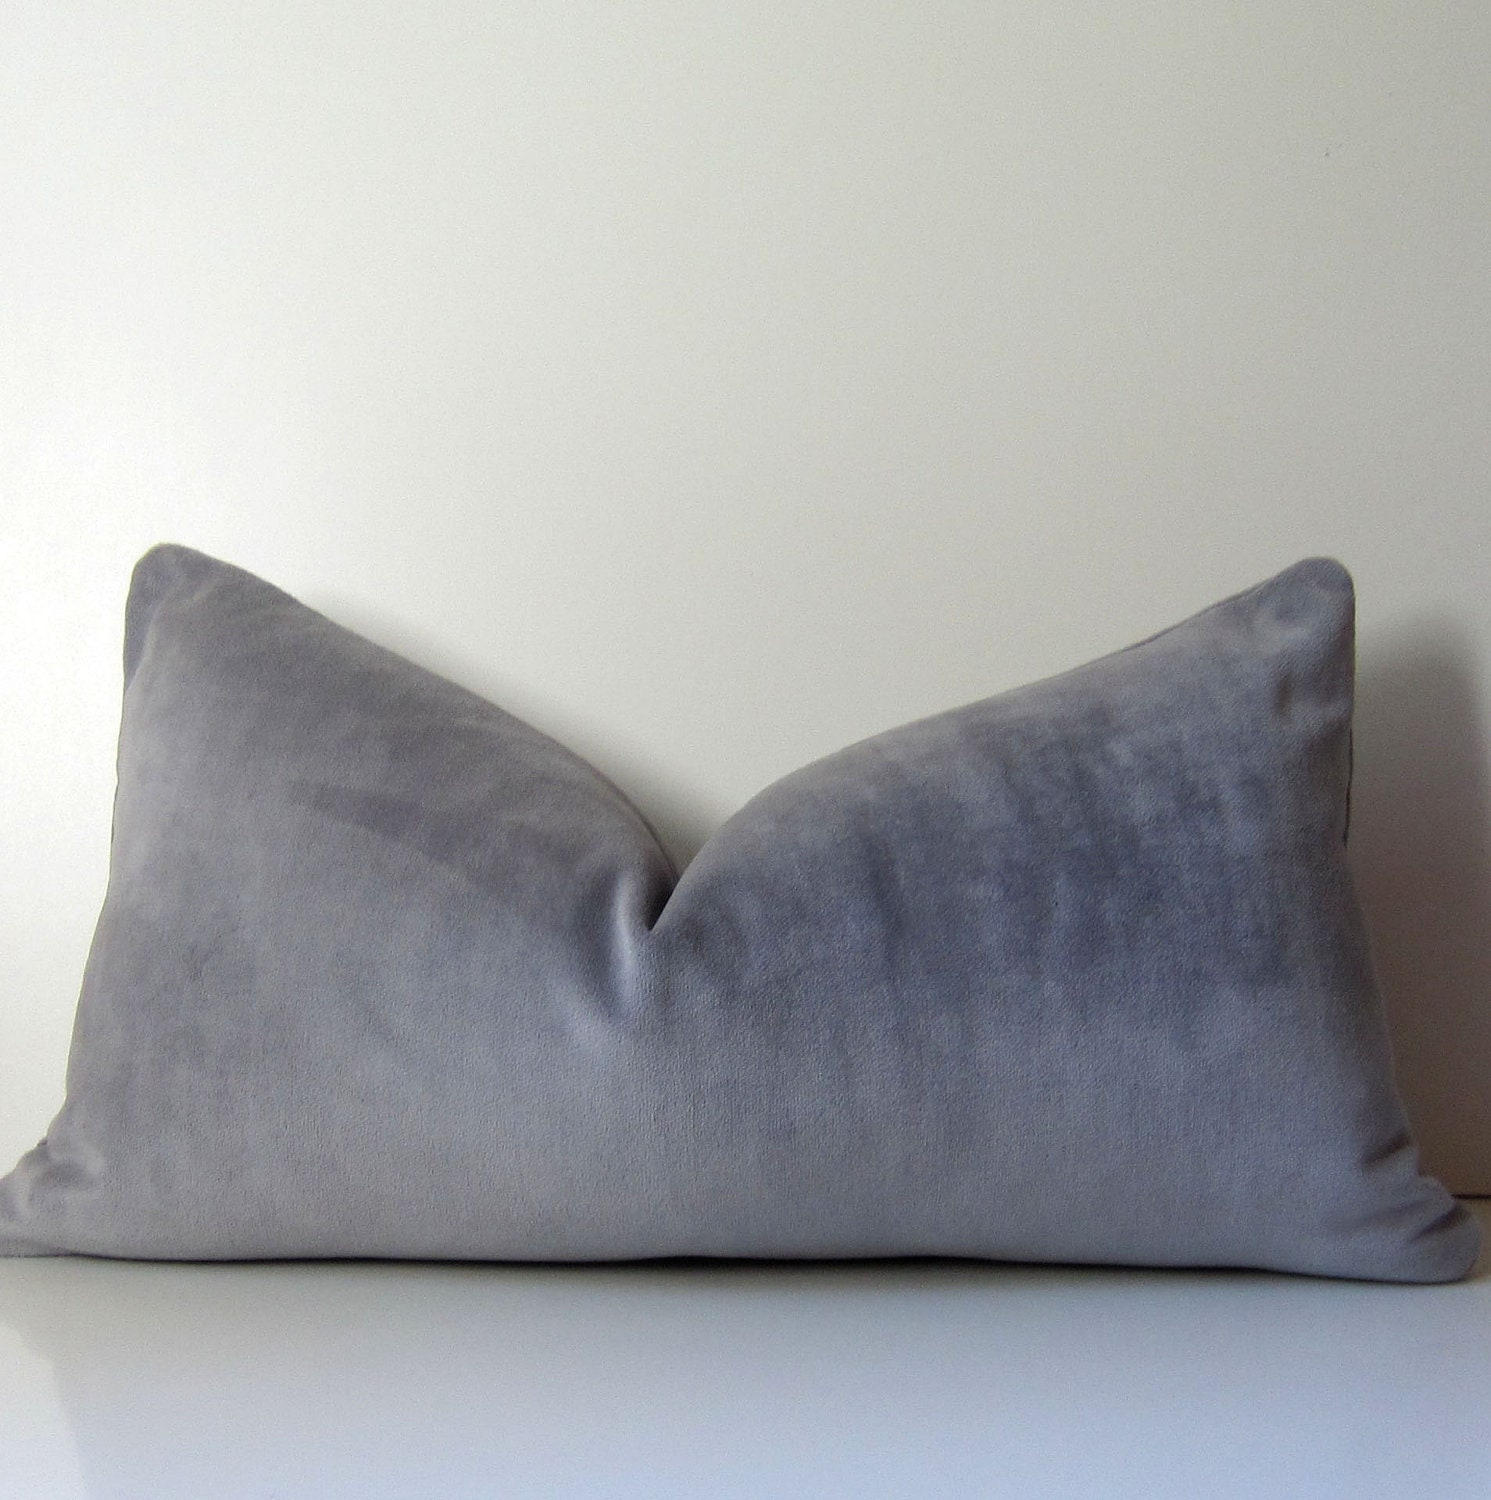 Gray pillow - Decorative Pillow Cover -  12 x 22 inch - Lumbar - Gray velvet - lavender - heavy weight velvet - ready to ship - studiotullia